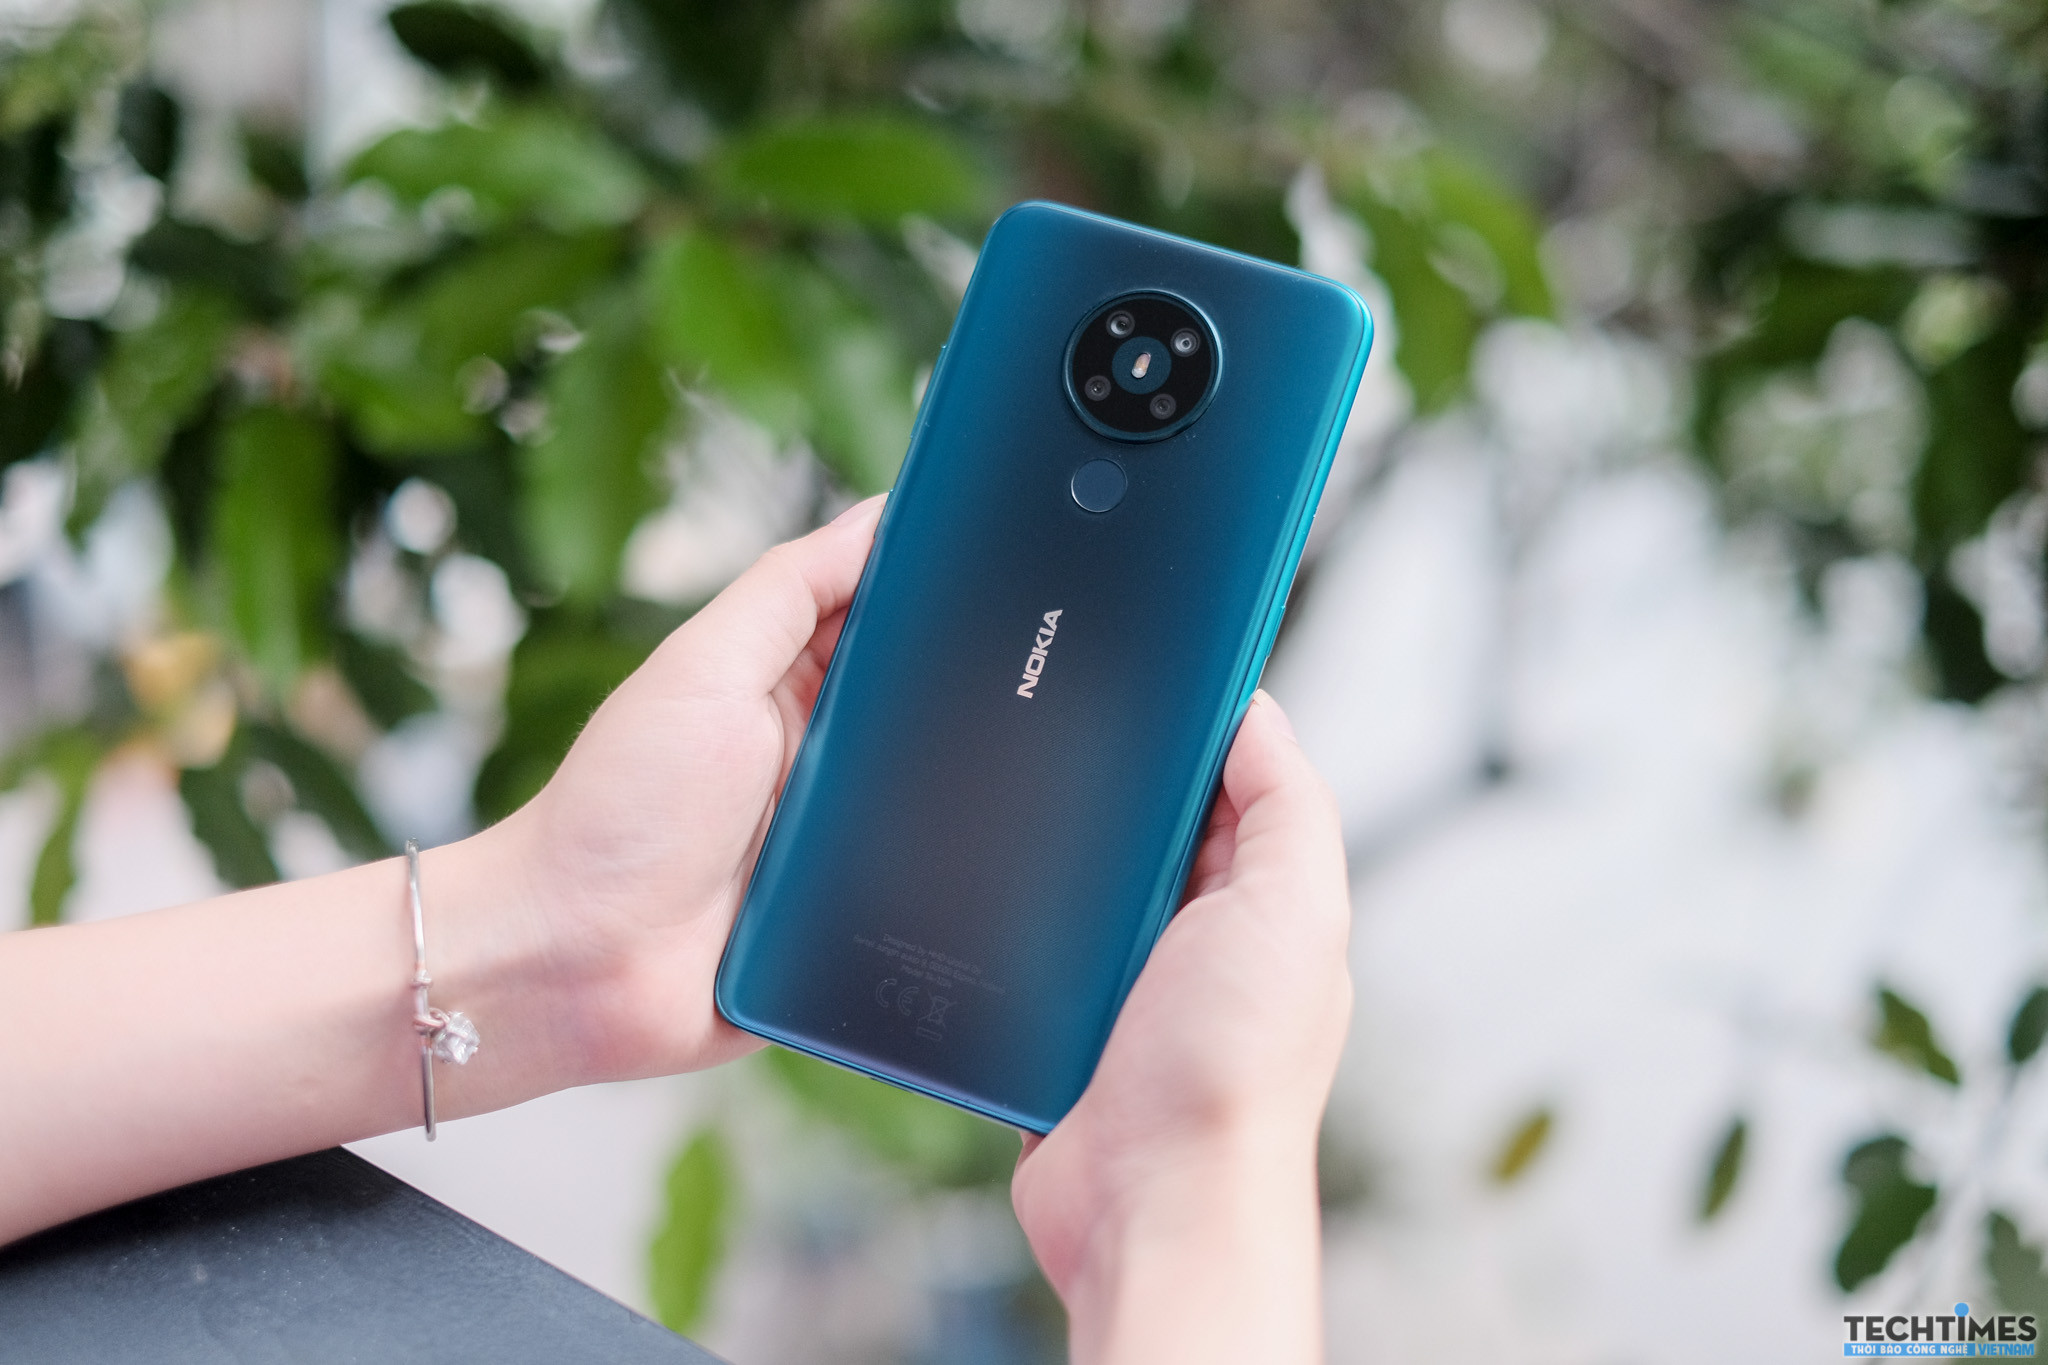 Review Nokia 5.3: beautiful design, smooth operating system